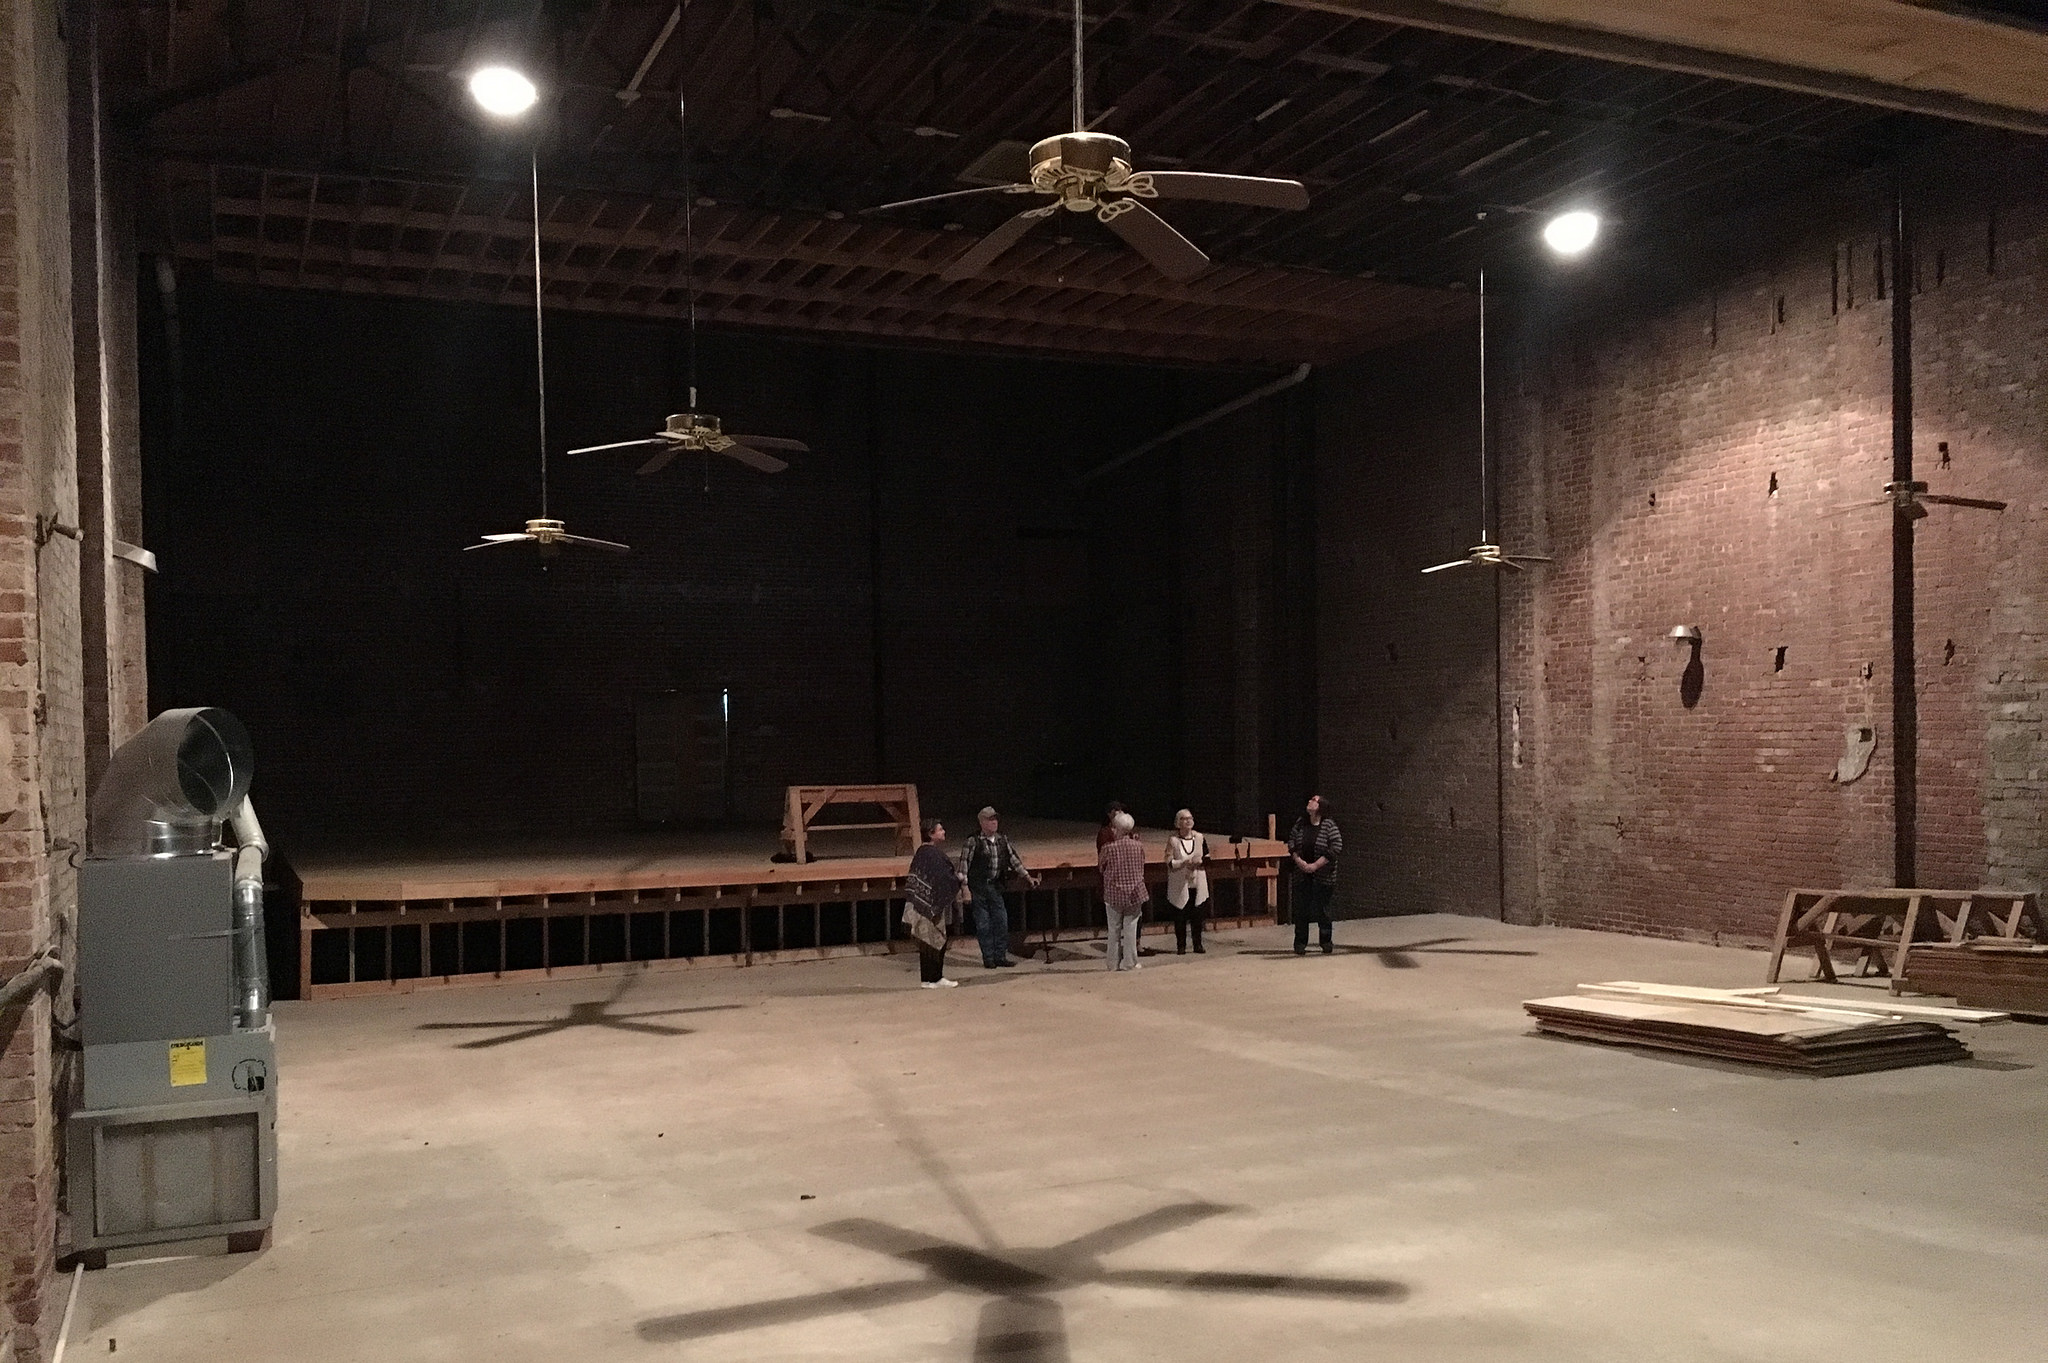 Fairfax Community Foundation making efforts to restore the Tall Chief Theatre